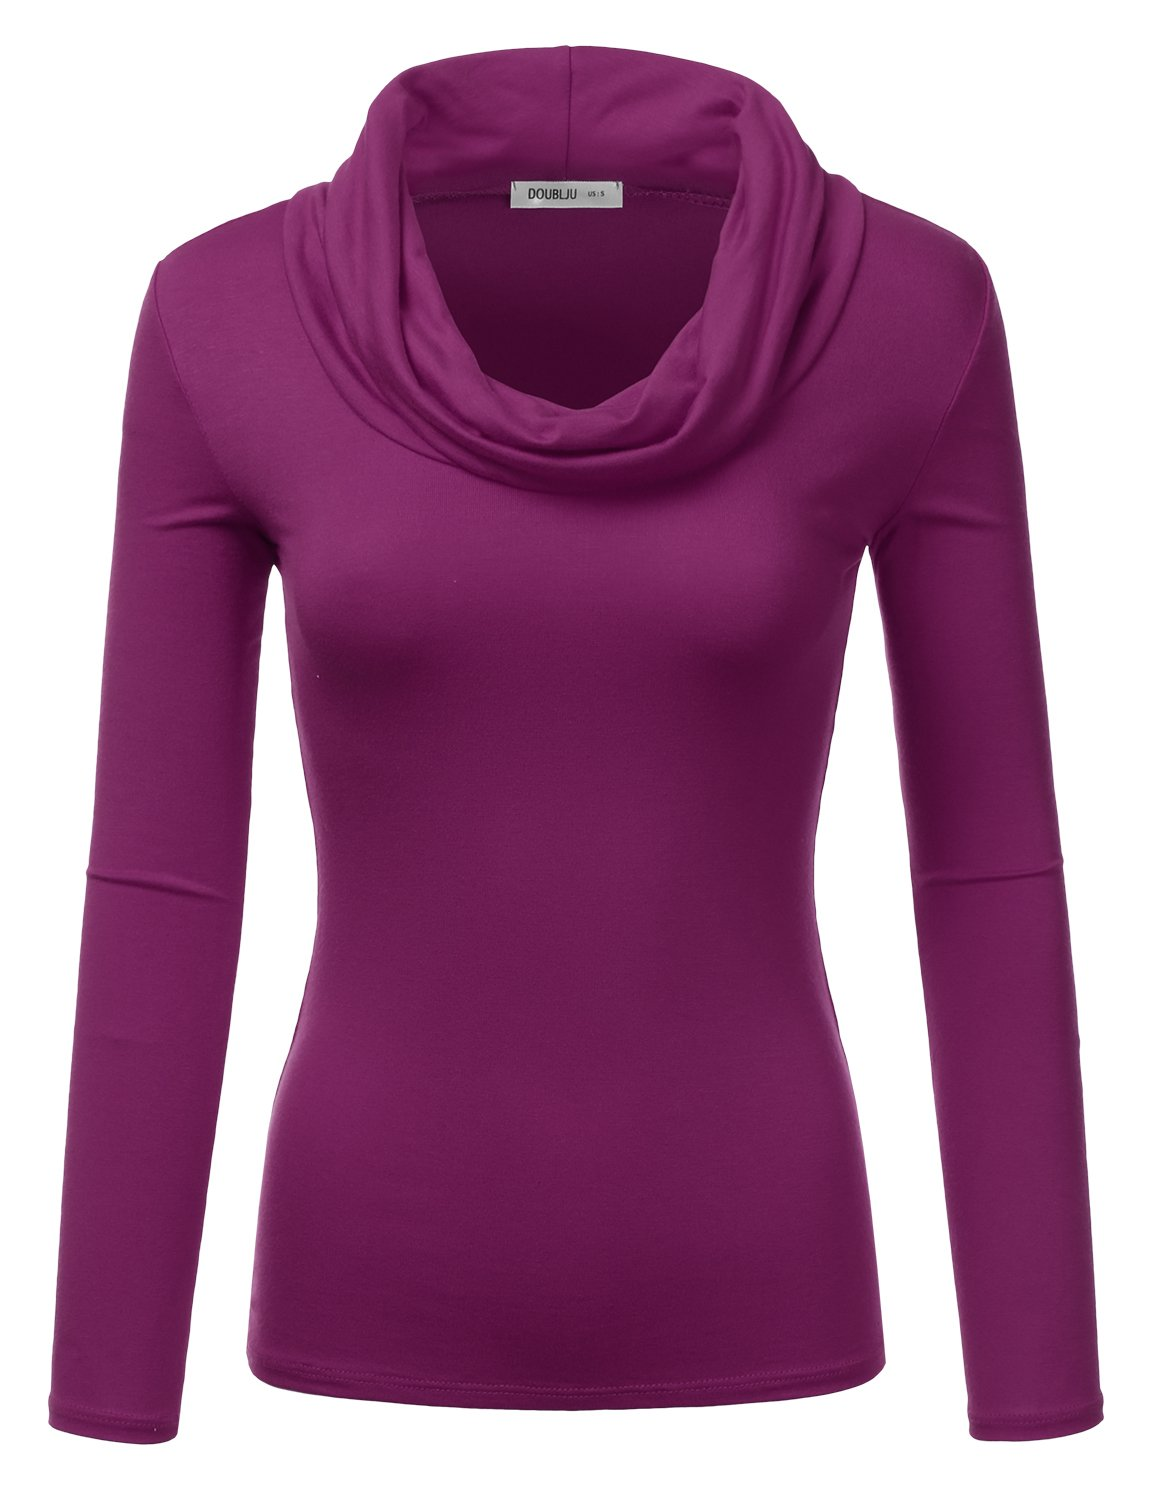 Doublju Lightweight Soft Knit Cowl Neck Top For Women With Plus Size (Made In USA) MAGENTA SMALL